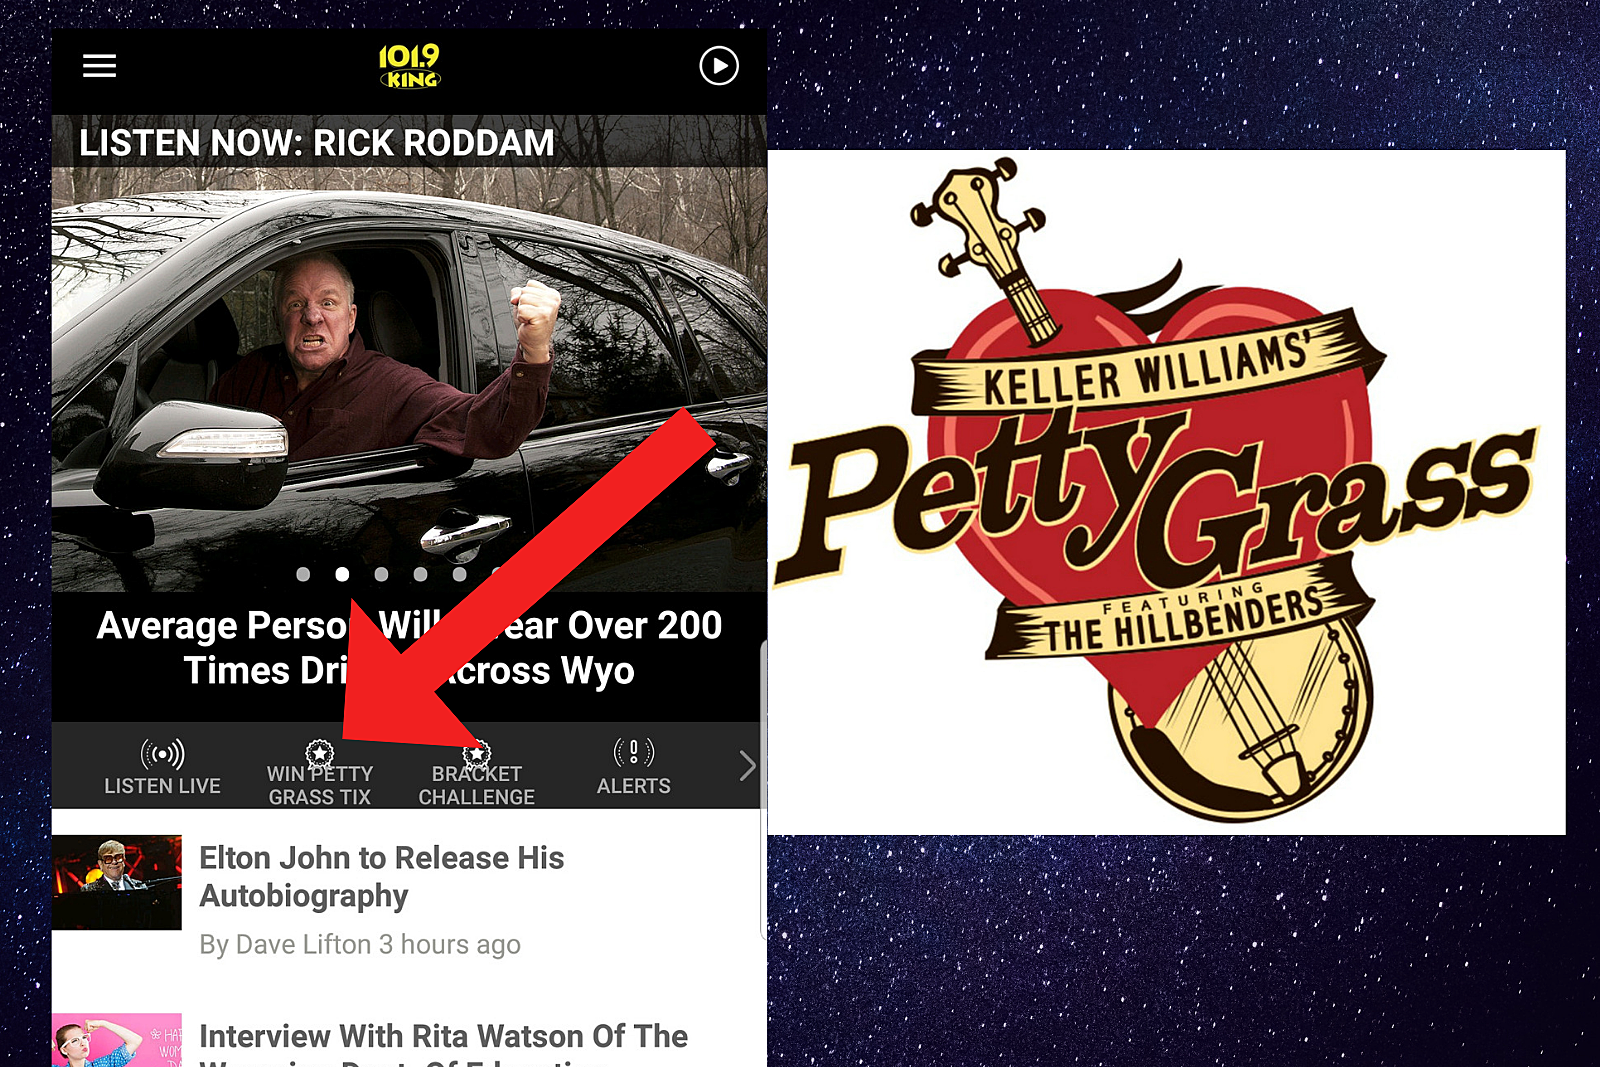 Get the King FM App for a Chance to Win 'Petty Grass' Tickets